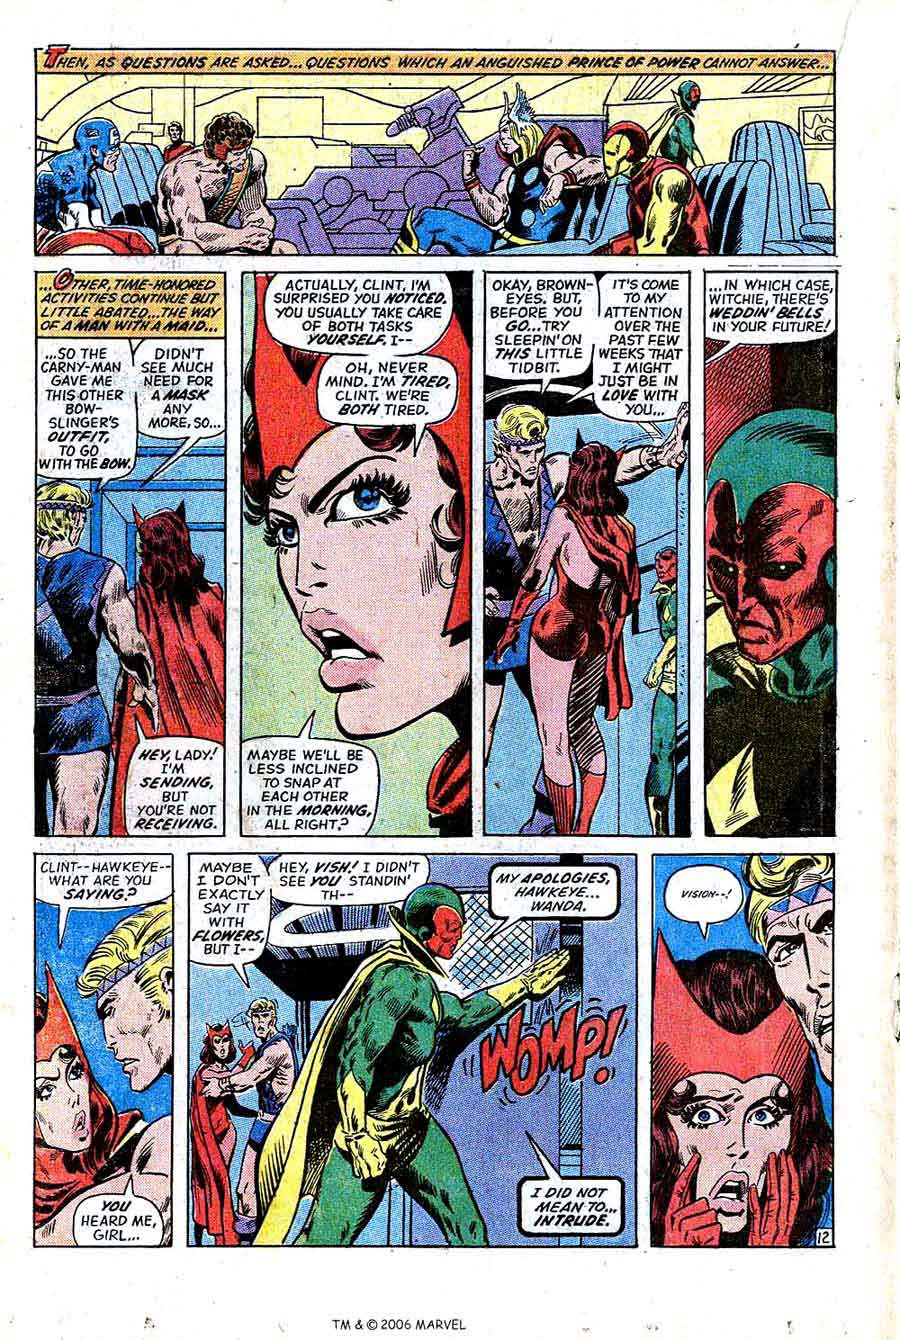 Avengers v1 #99 marvel comic book page art by Barry Windsor Smith